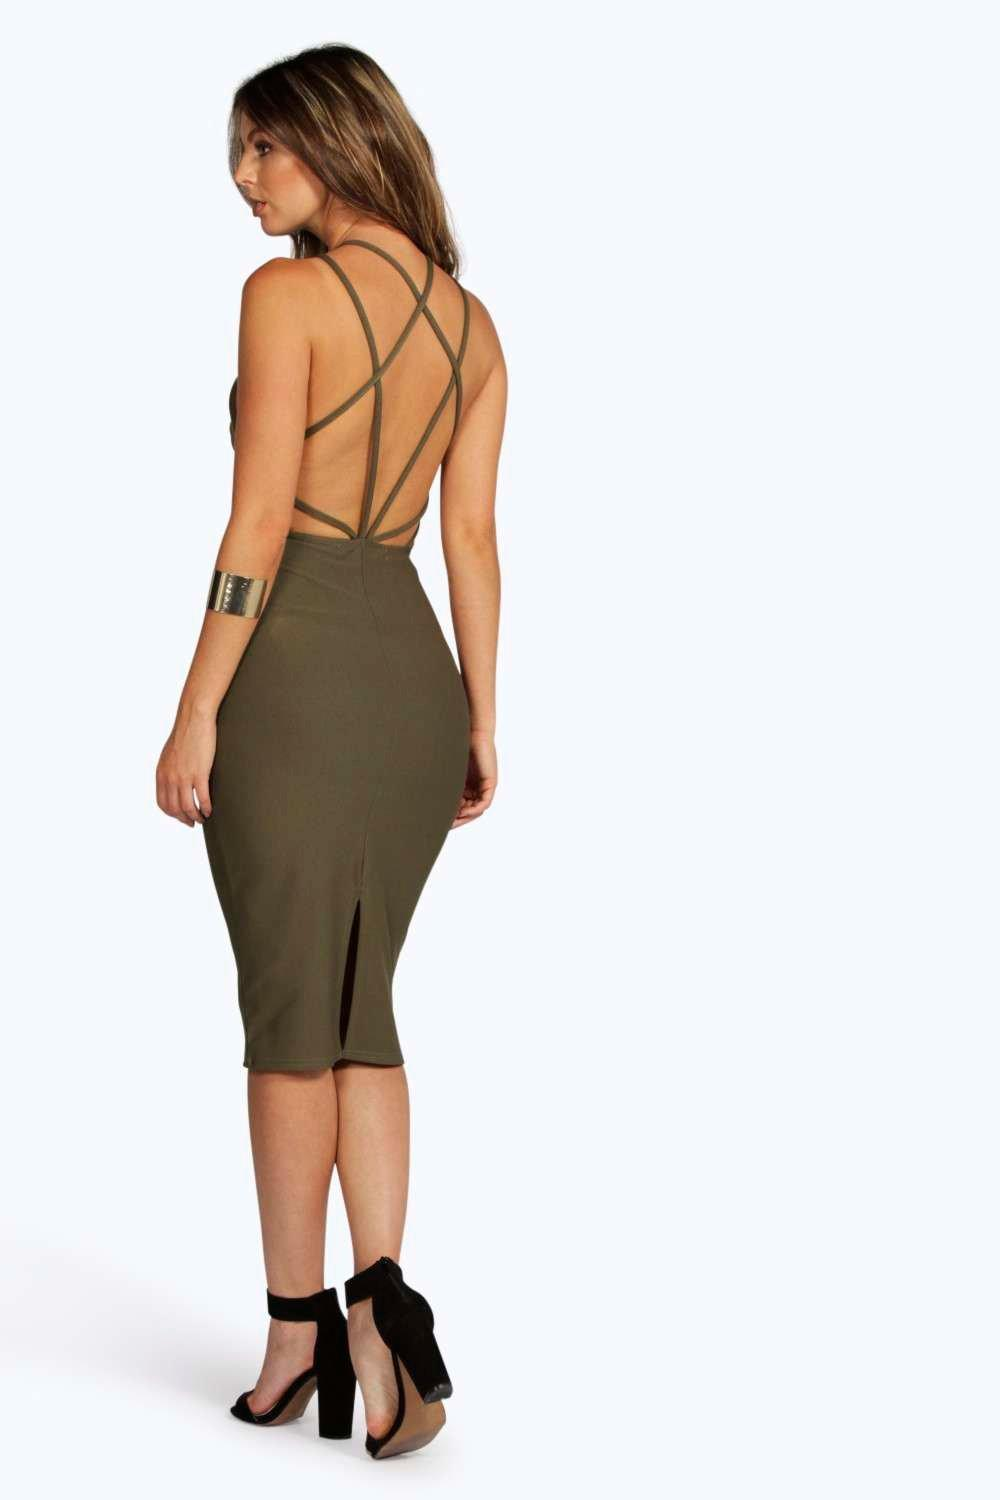 Patsy Crepe Strappy Back Midi Bodycon Dress